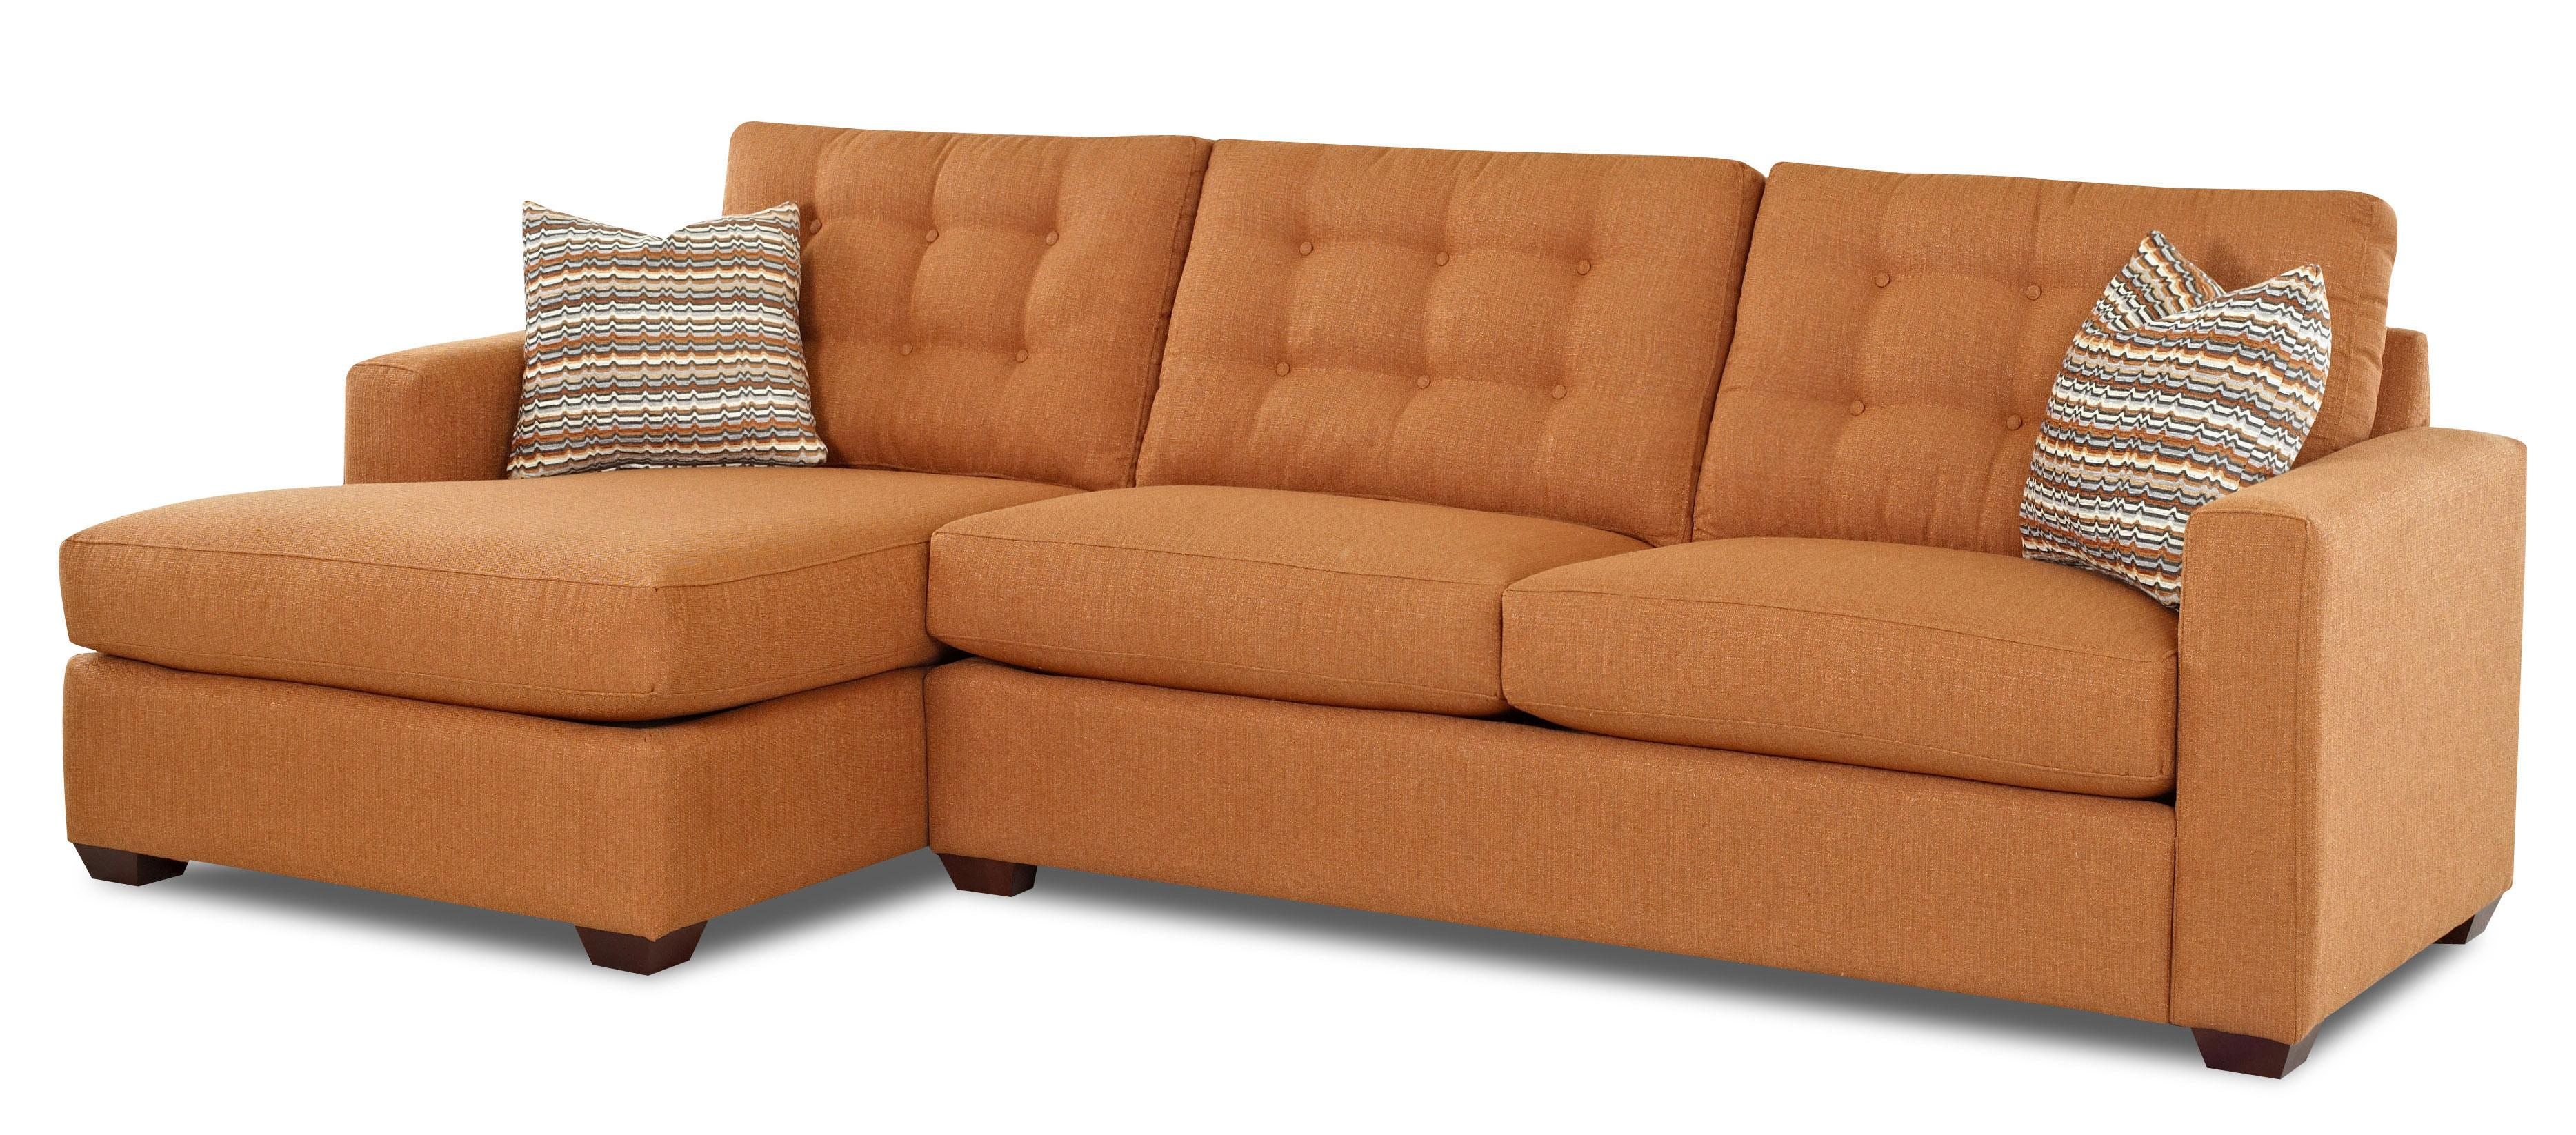 Contemporary sectional sofa with left facing chaise lounge for Contemporary sectional sofas